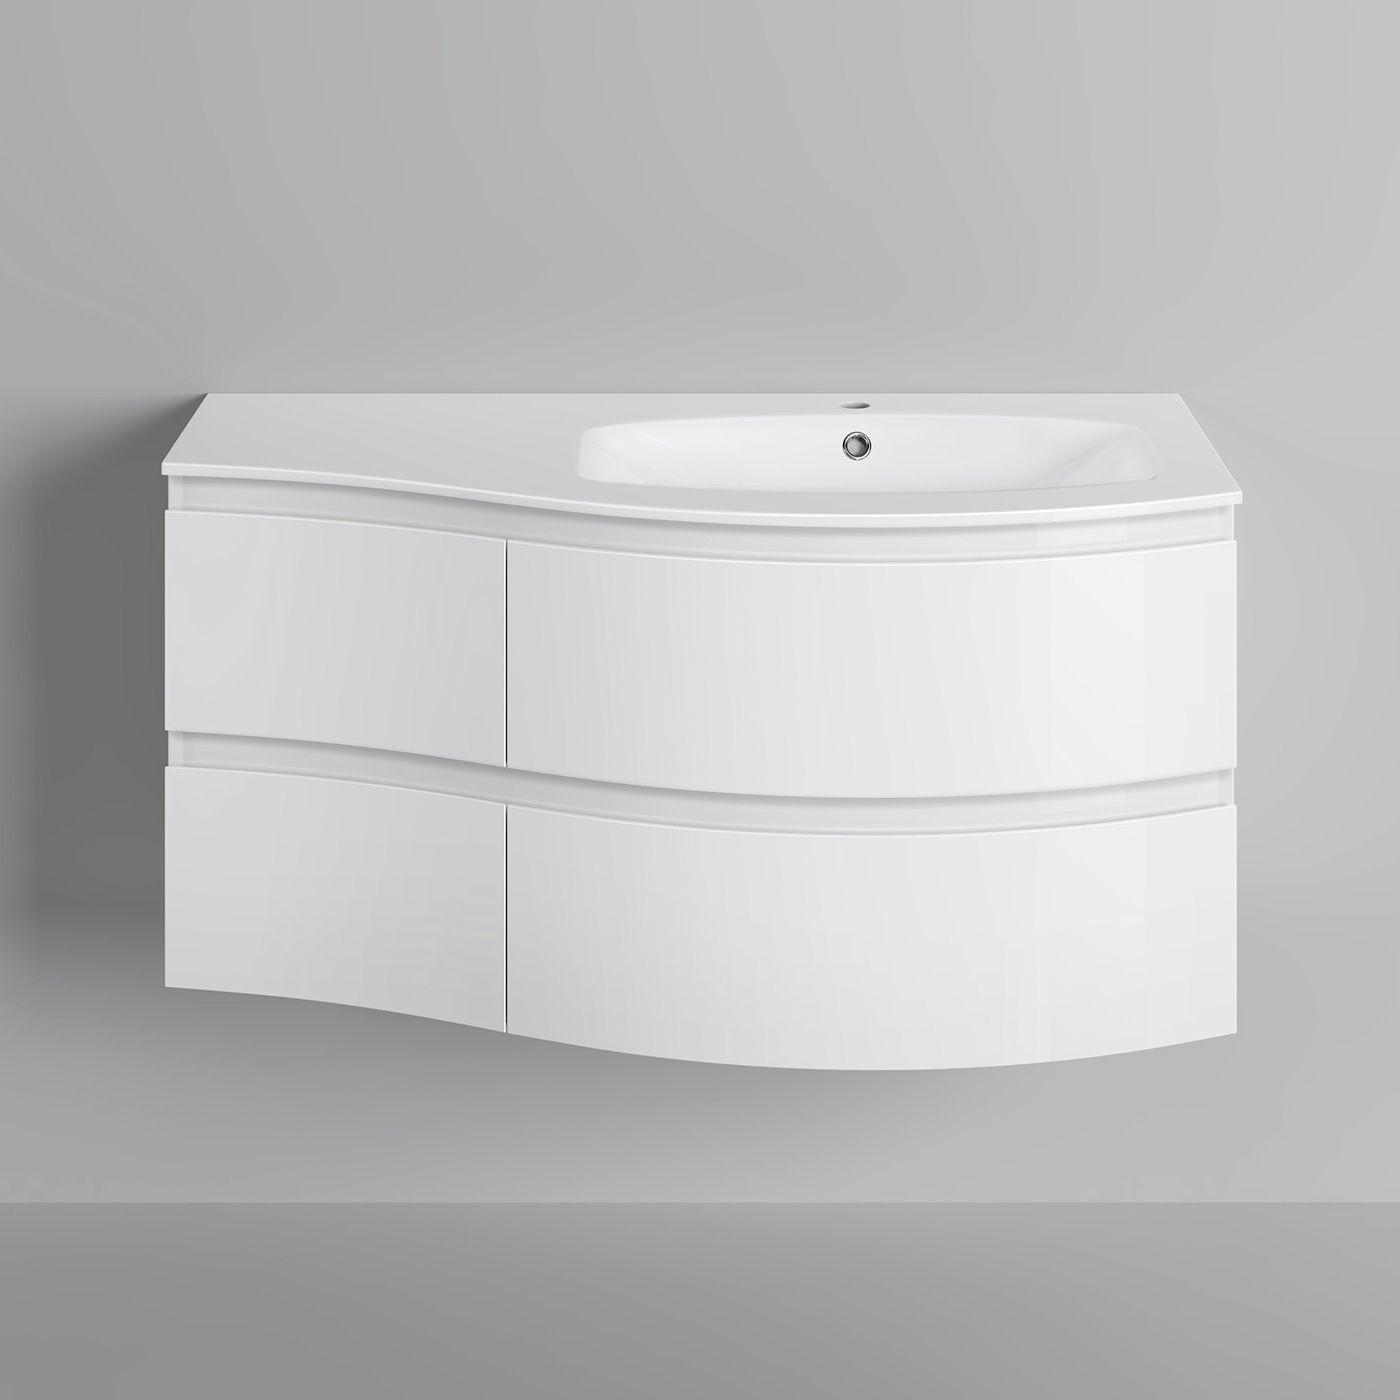 Modern White Vanity Unit Curved Bathroom Furniture Sink